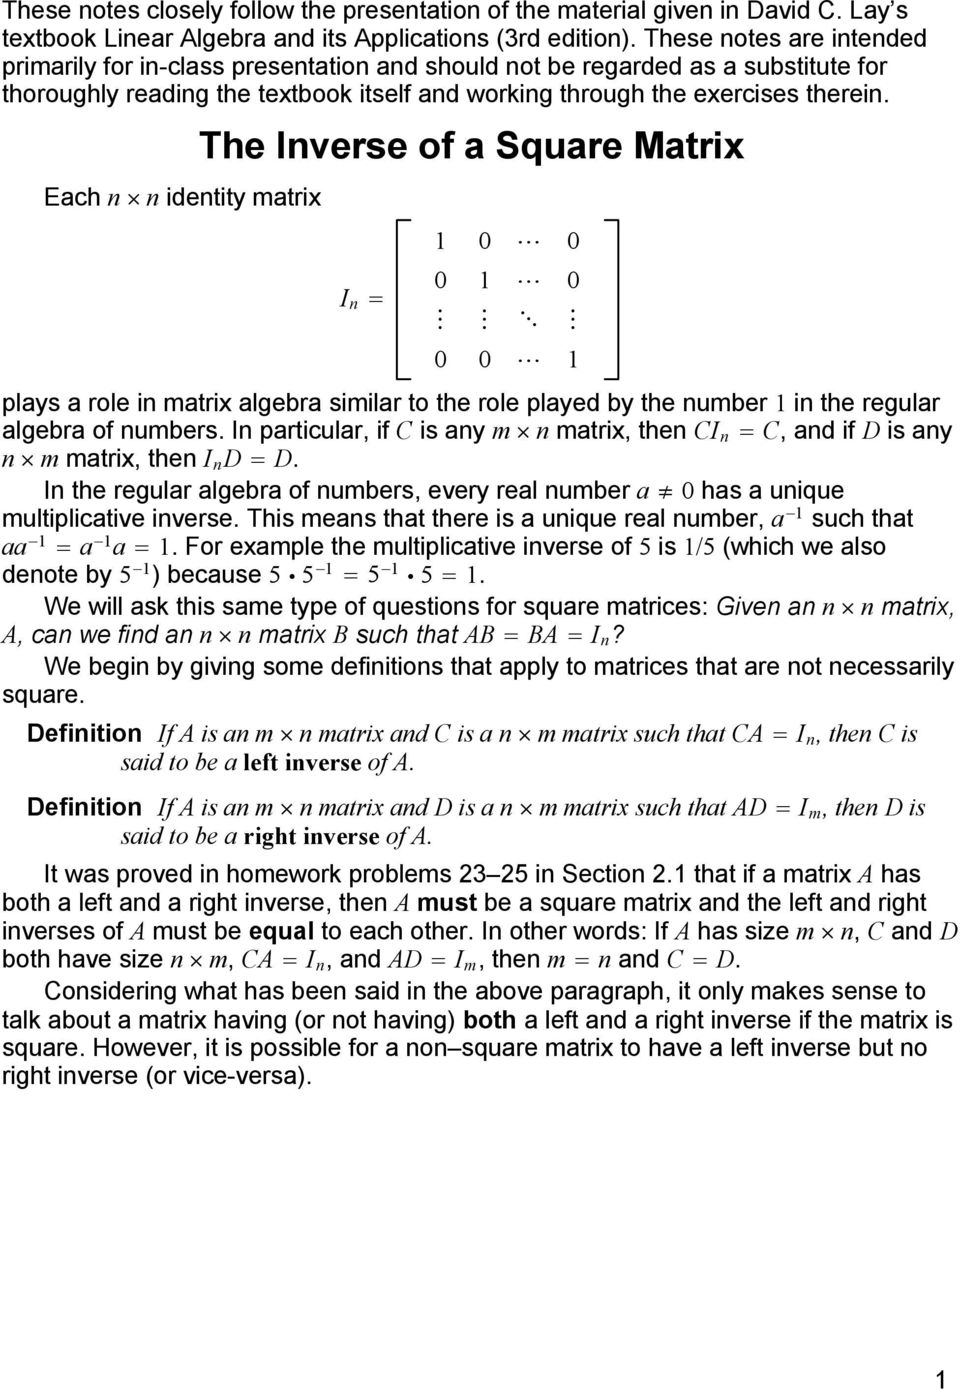 n 1 0 0 0 1 0 0 0 1 plays a role in matrix algebra similar to the role played by the number 1 in the regular algebra of numbers In particular, if C is any m n matrix, then CI n C, and if D is any n m